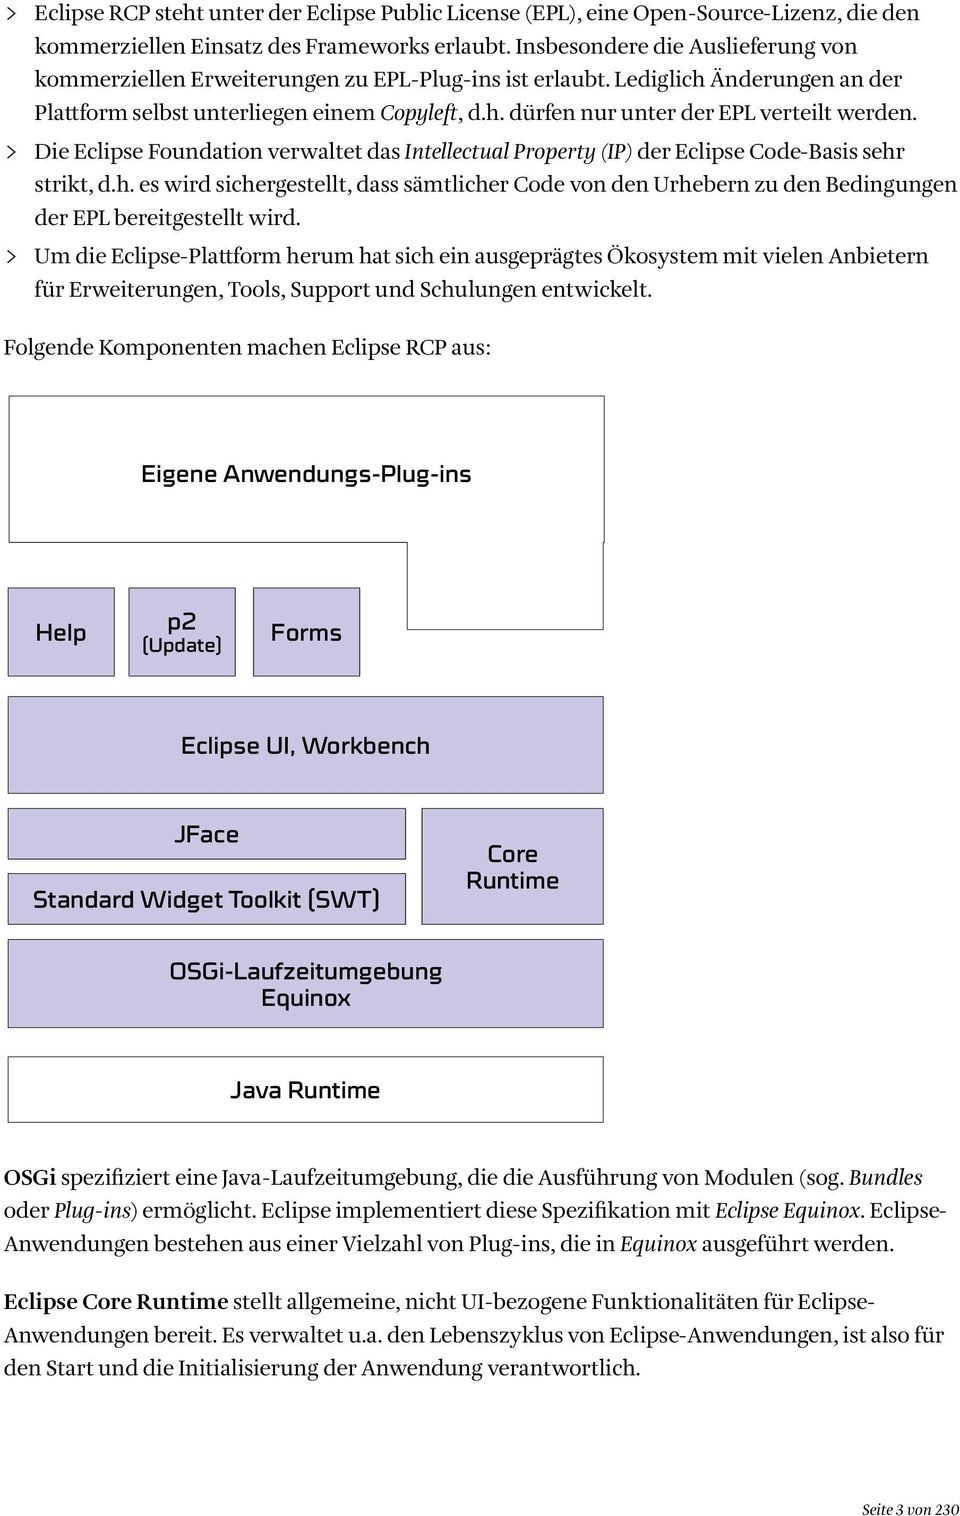 > Die Eclipse Foundation verwaltet das Intellectual Property (IP) der Eclipse Code-Basis sehr